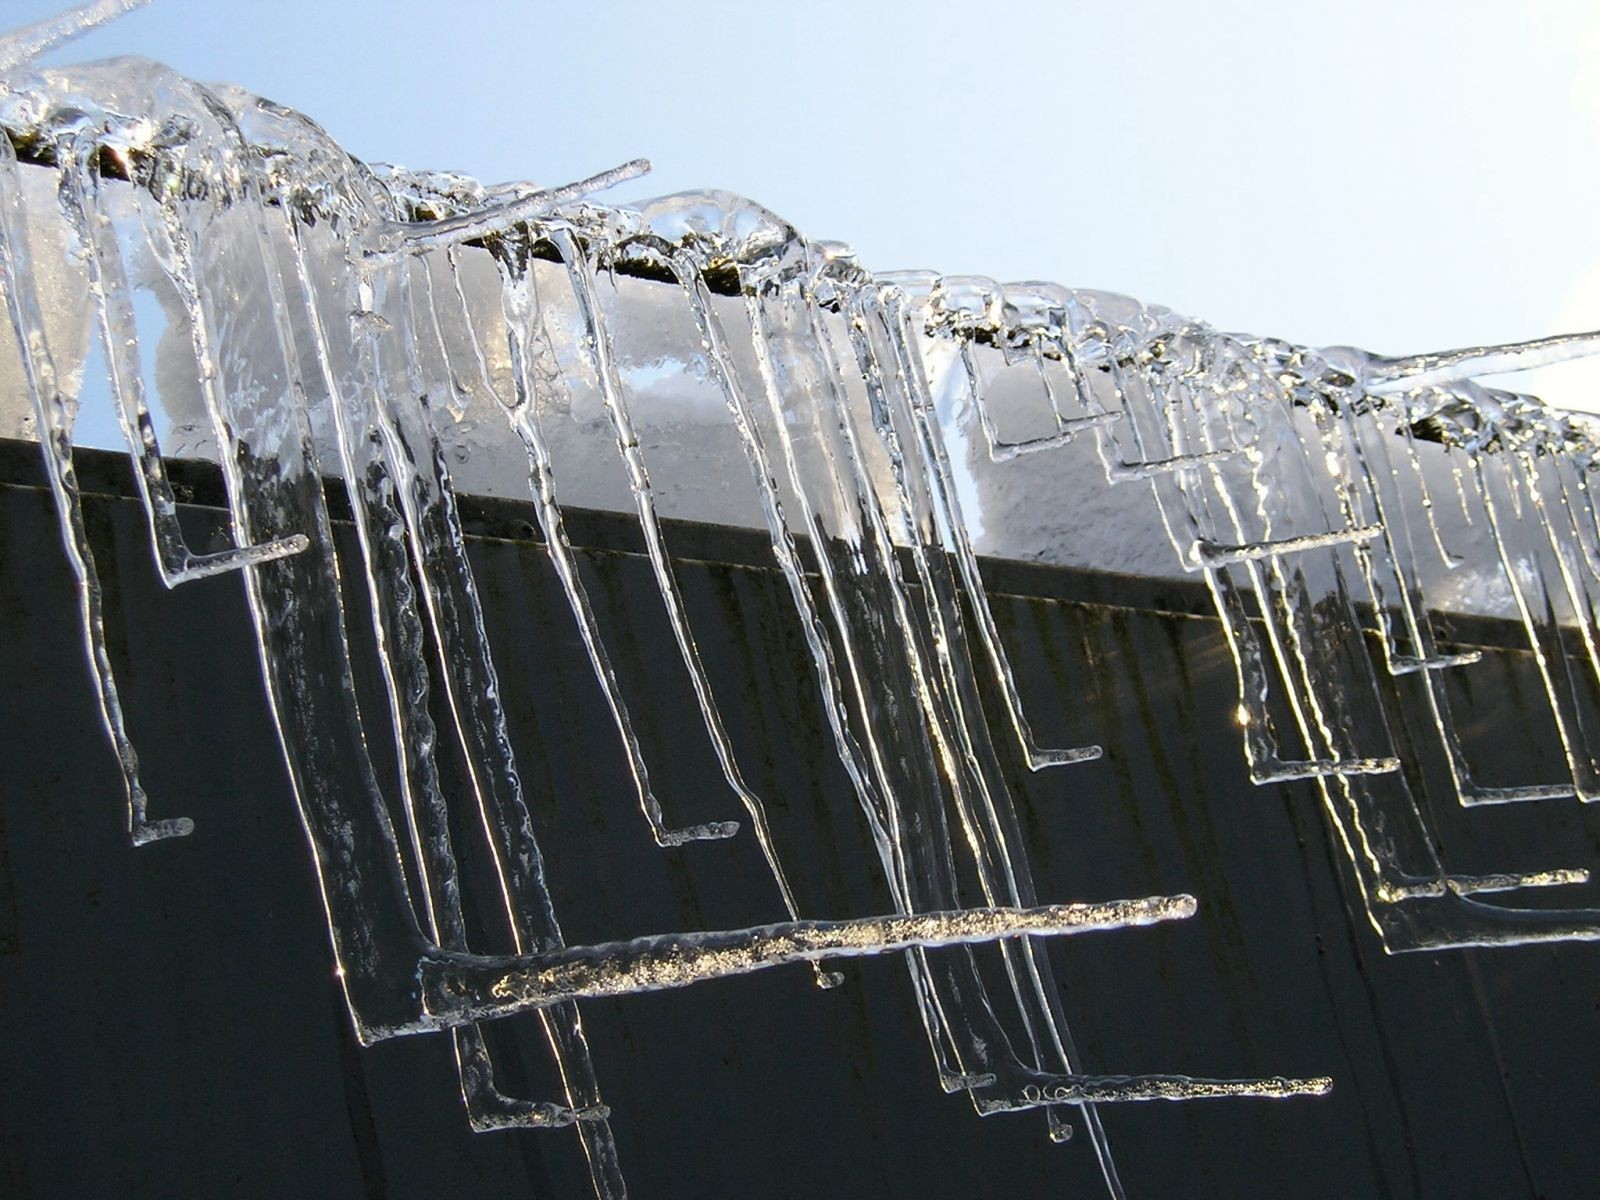 Right-angled Icicles at Glenmore Campsite